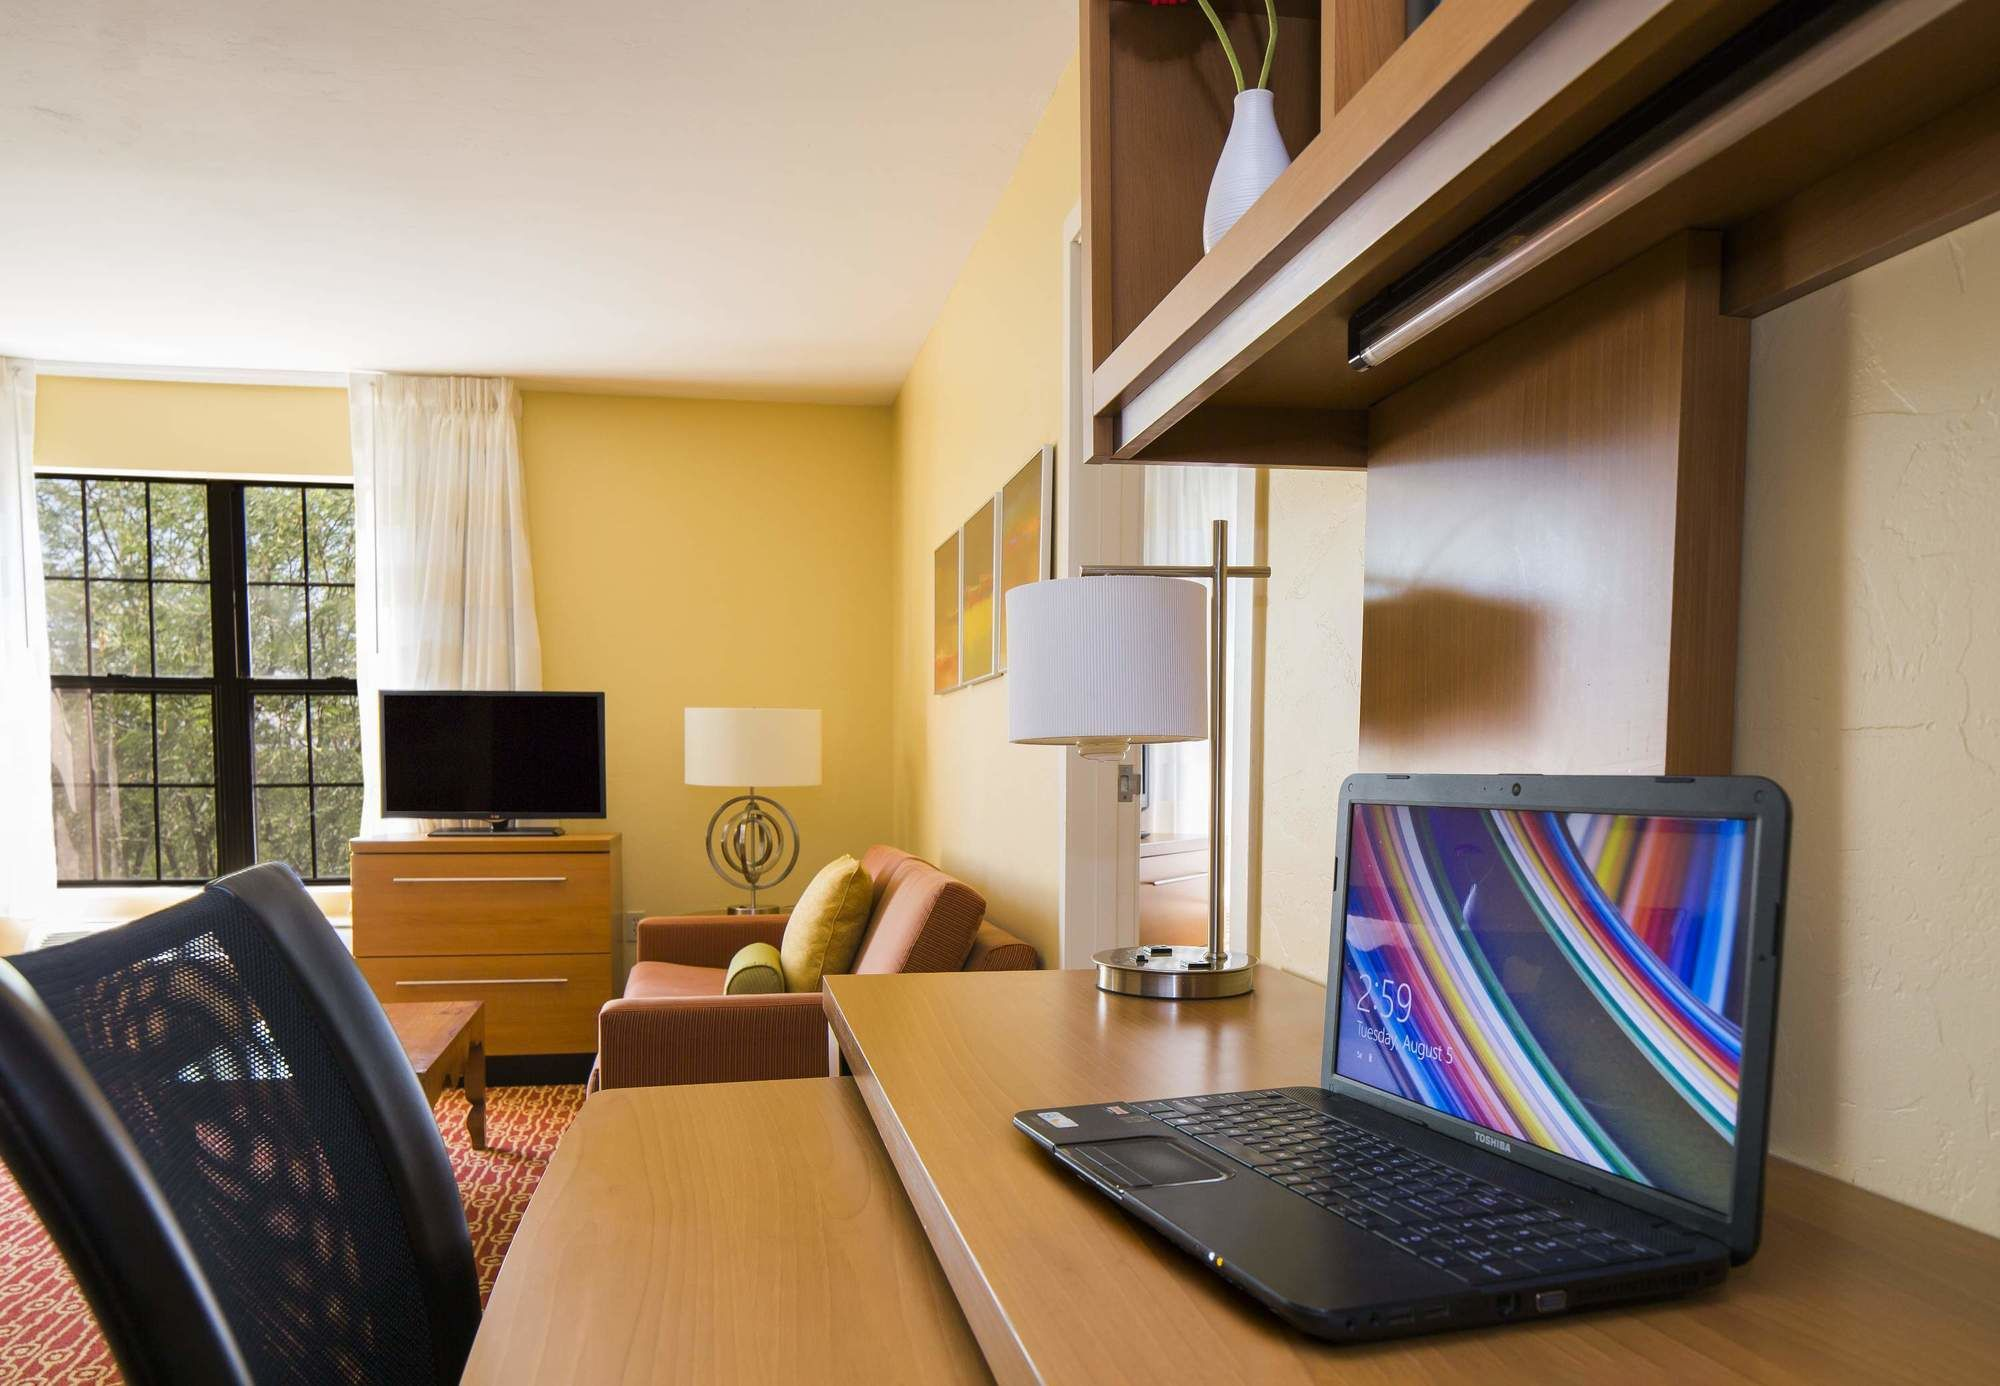 TownePlace Suites, part of the Marriott family, is your home away from home for extended stays. You will enjoy free high-speed Internet, a full kitchen, and a fitness center. You will enjoy free high-speed Internet, a full kitchen, and a fitness center/5(5).